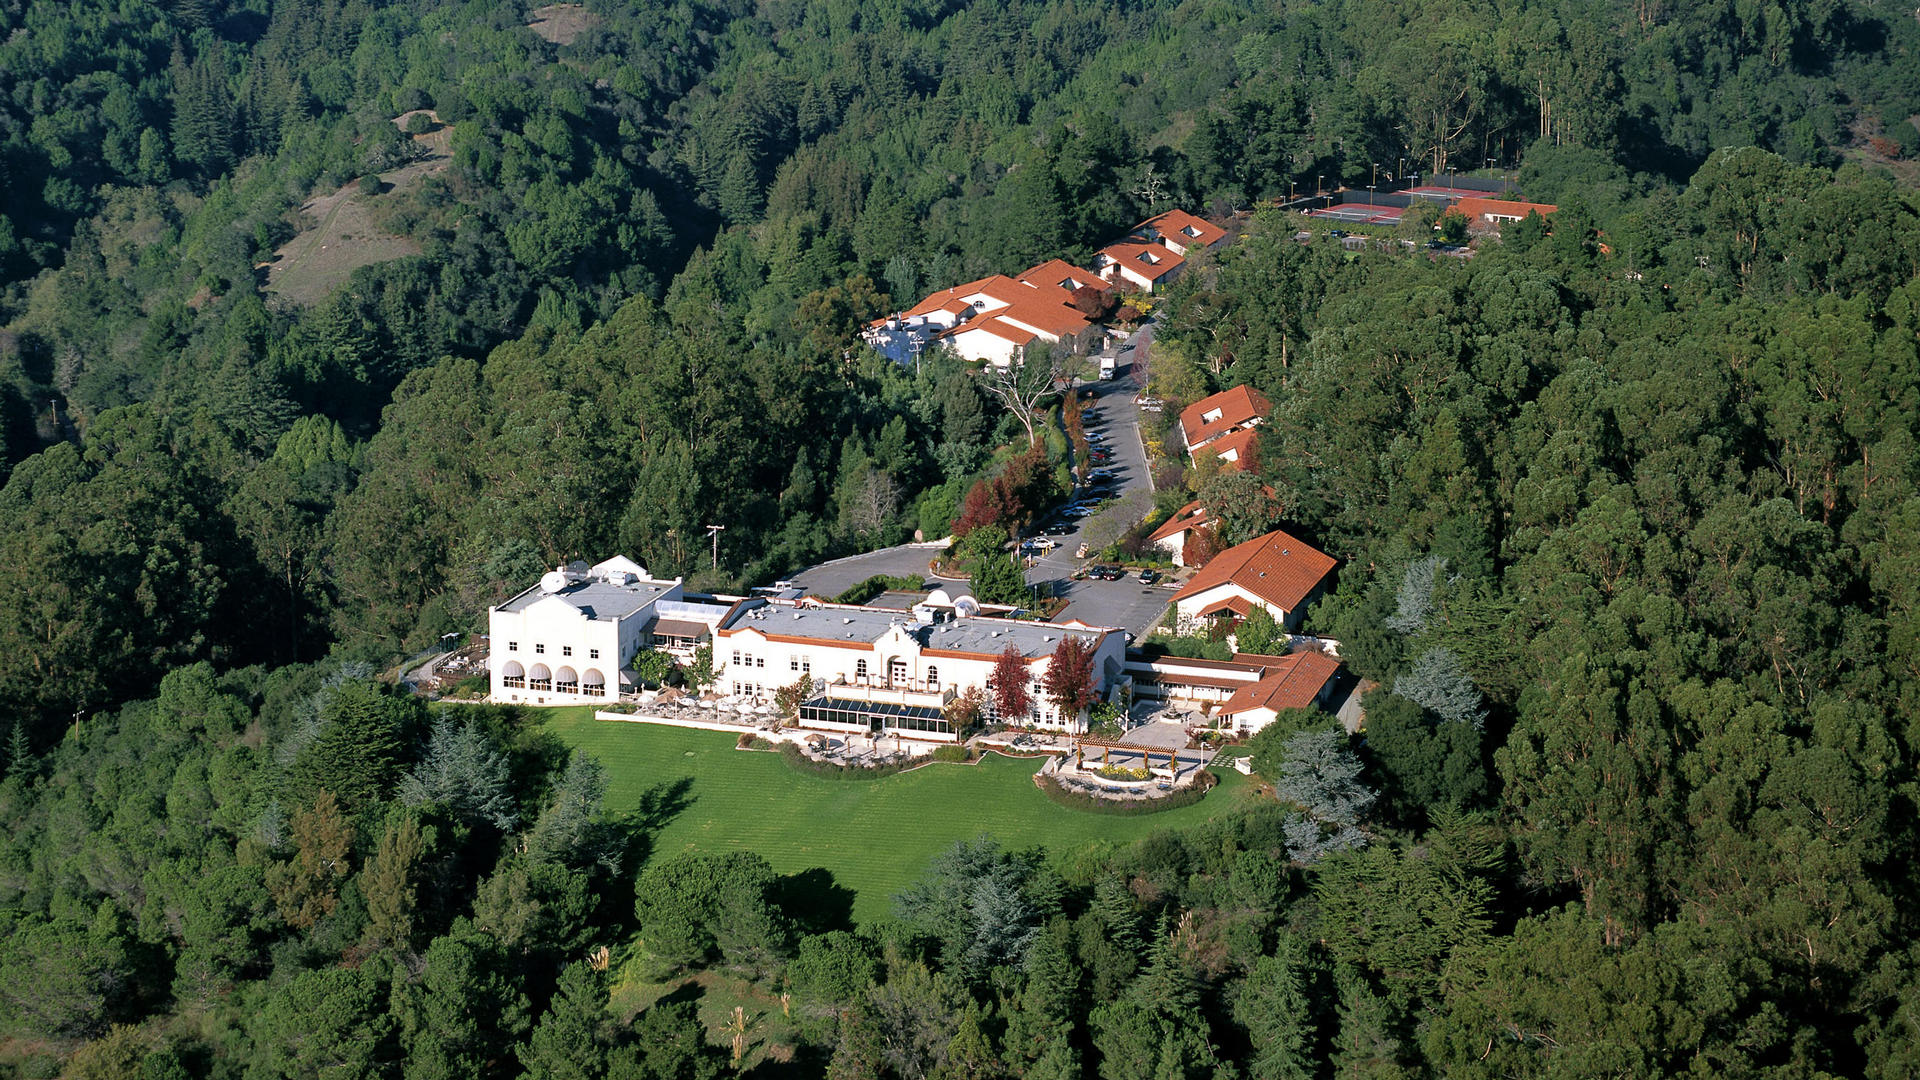 Aerial Views of Chaminade Resort & Spa in Santa Cruz